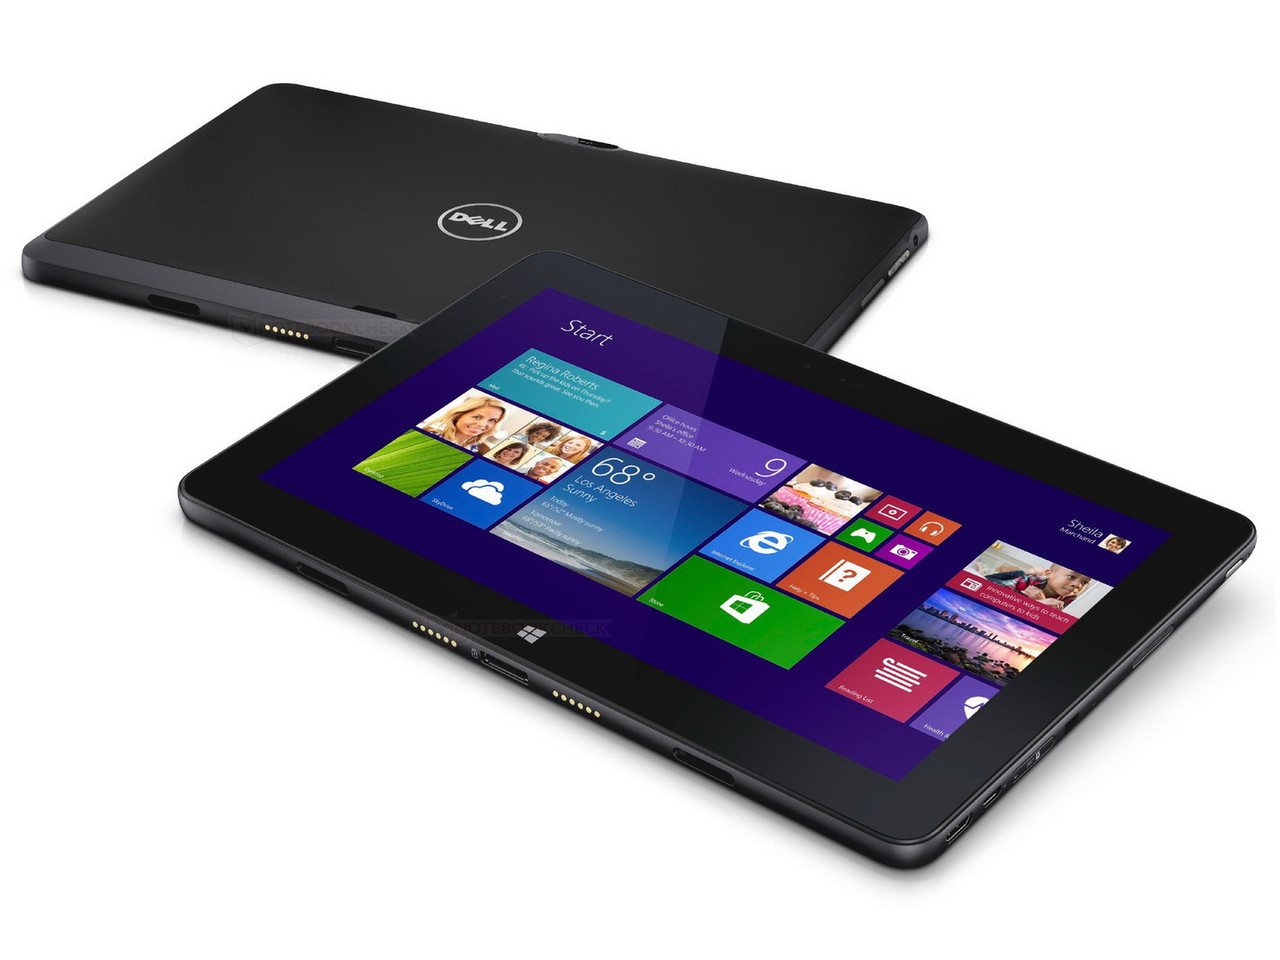 how to install windows 10 from usb on dell tablet